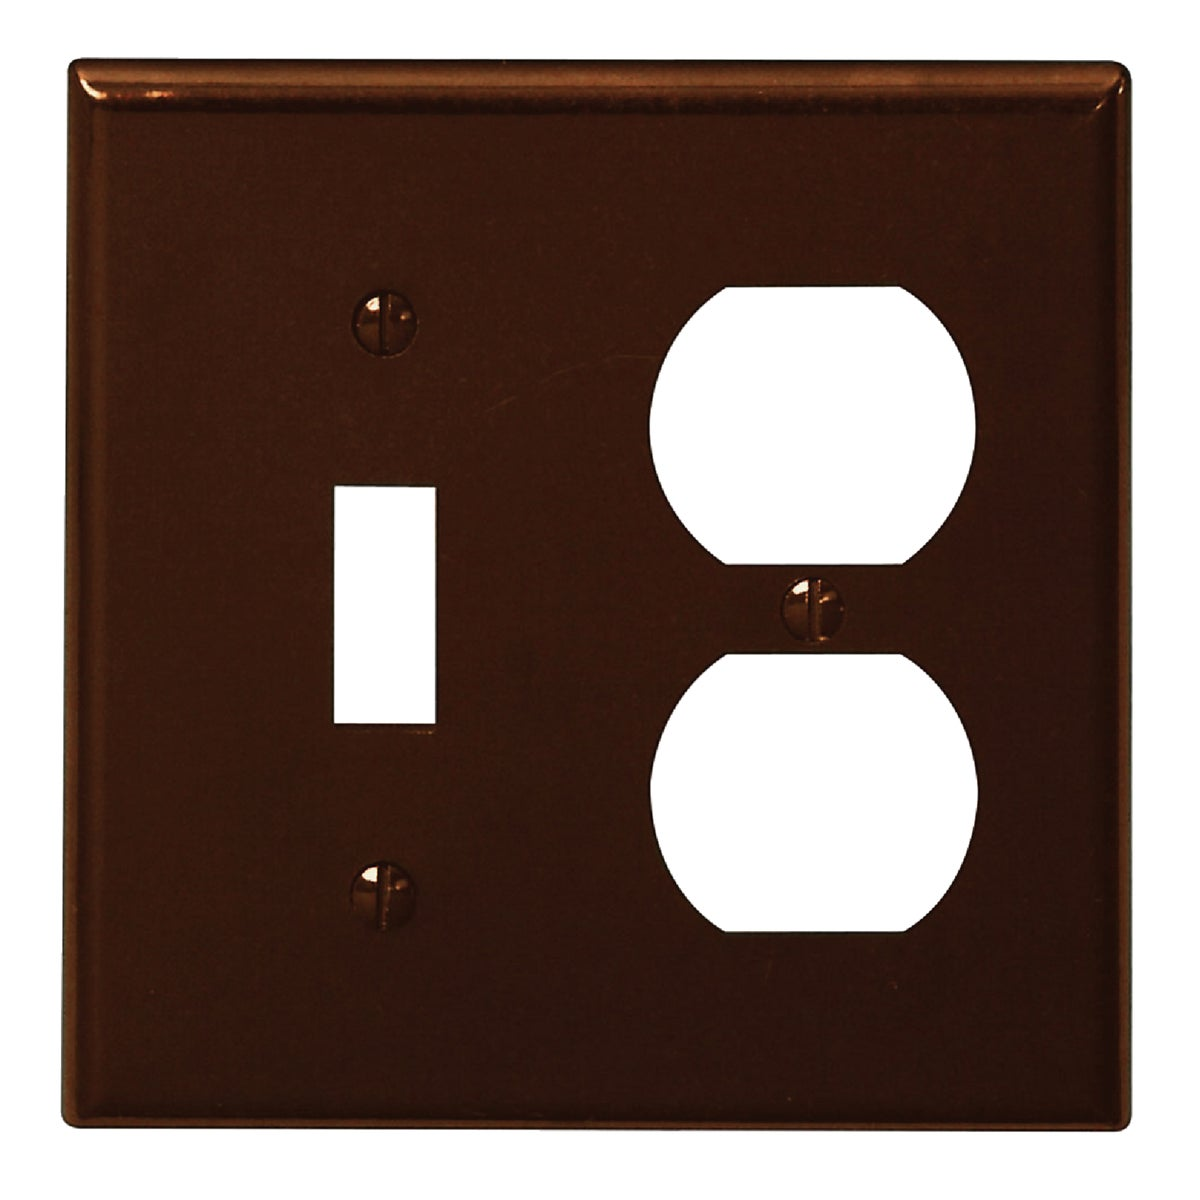 BRN COMBO WALL PLATE - 85005 by Leviton Mfg Co